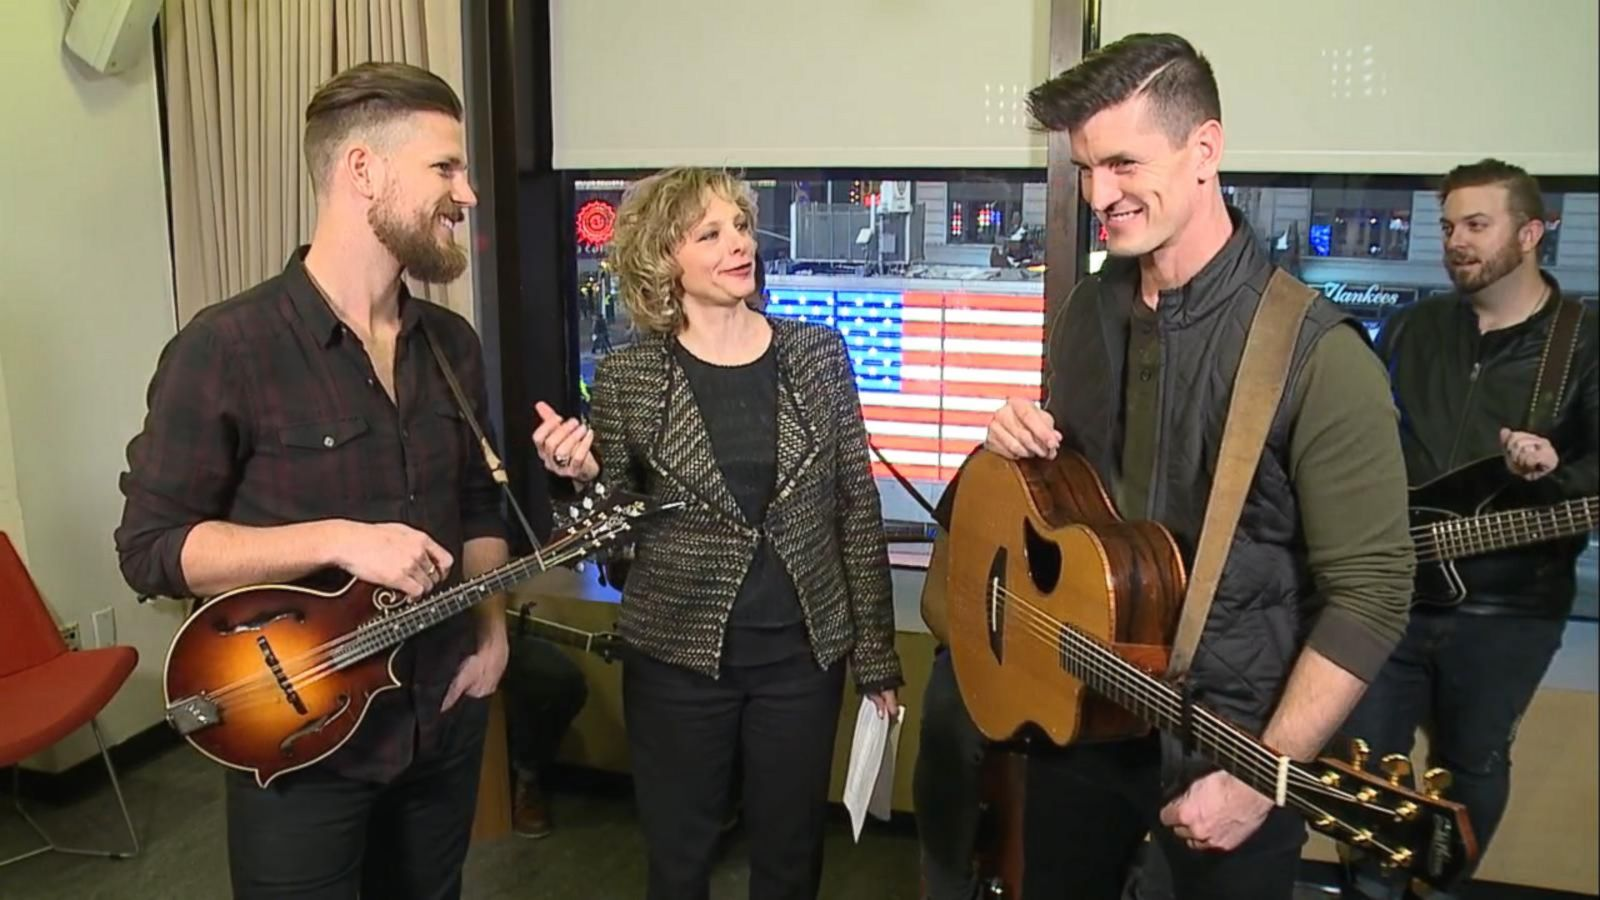 VIDEO: 'High Valley' on the Inspiration Behind Their Music